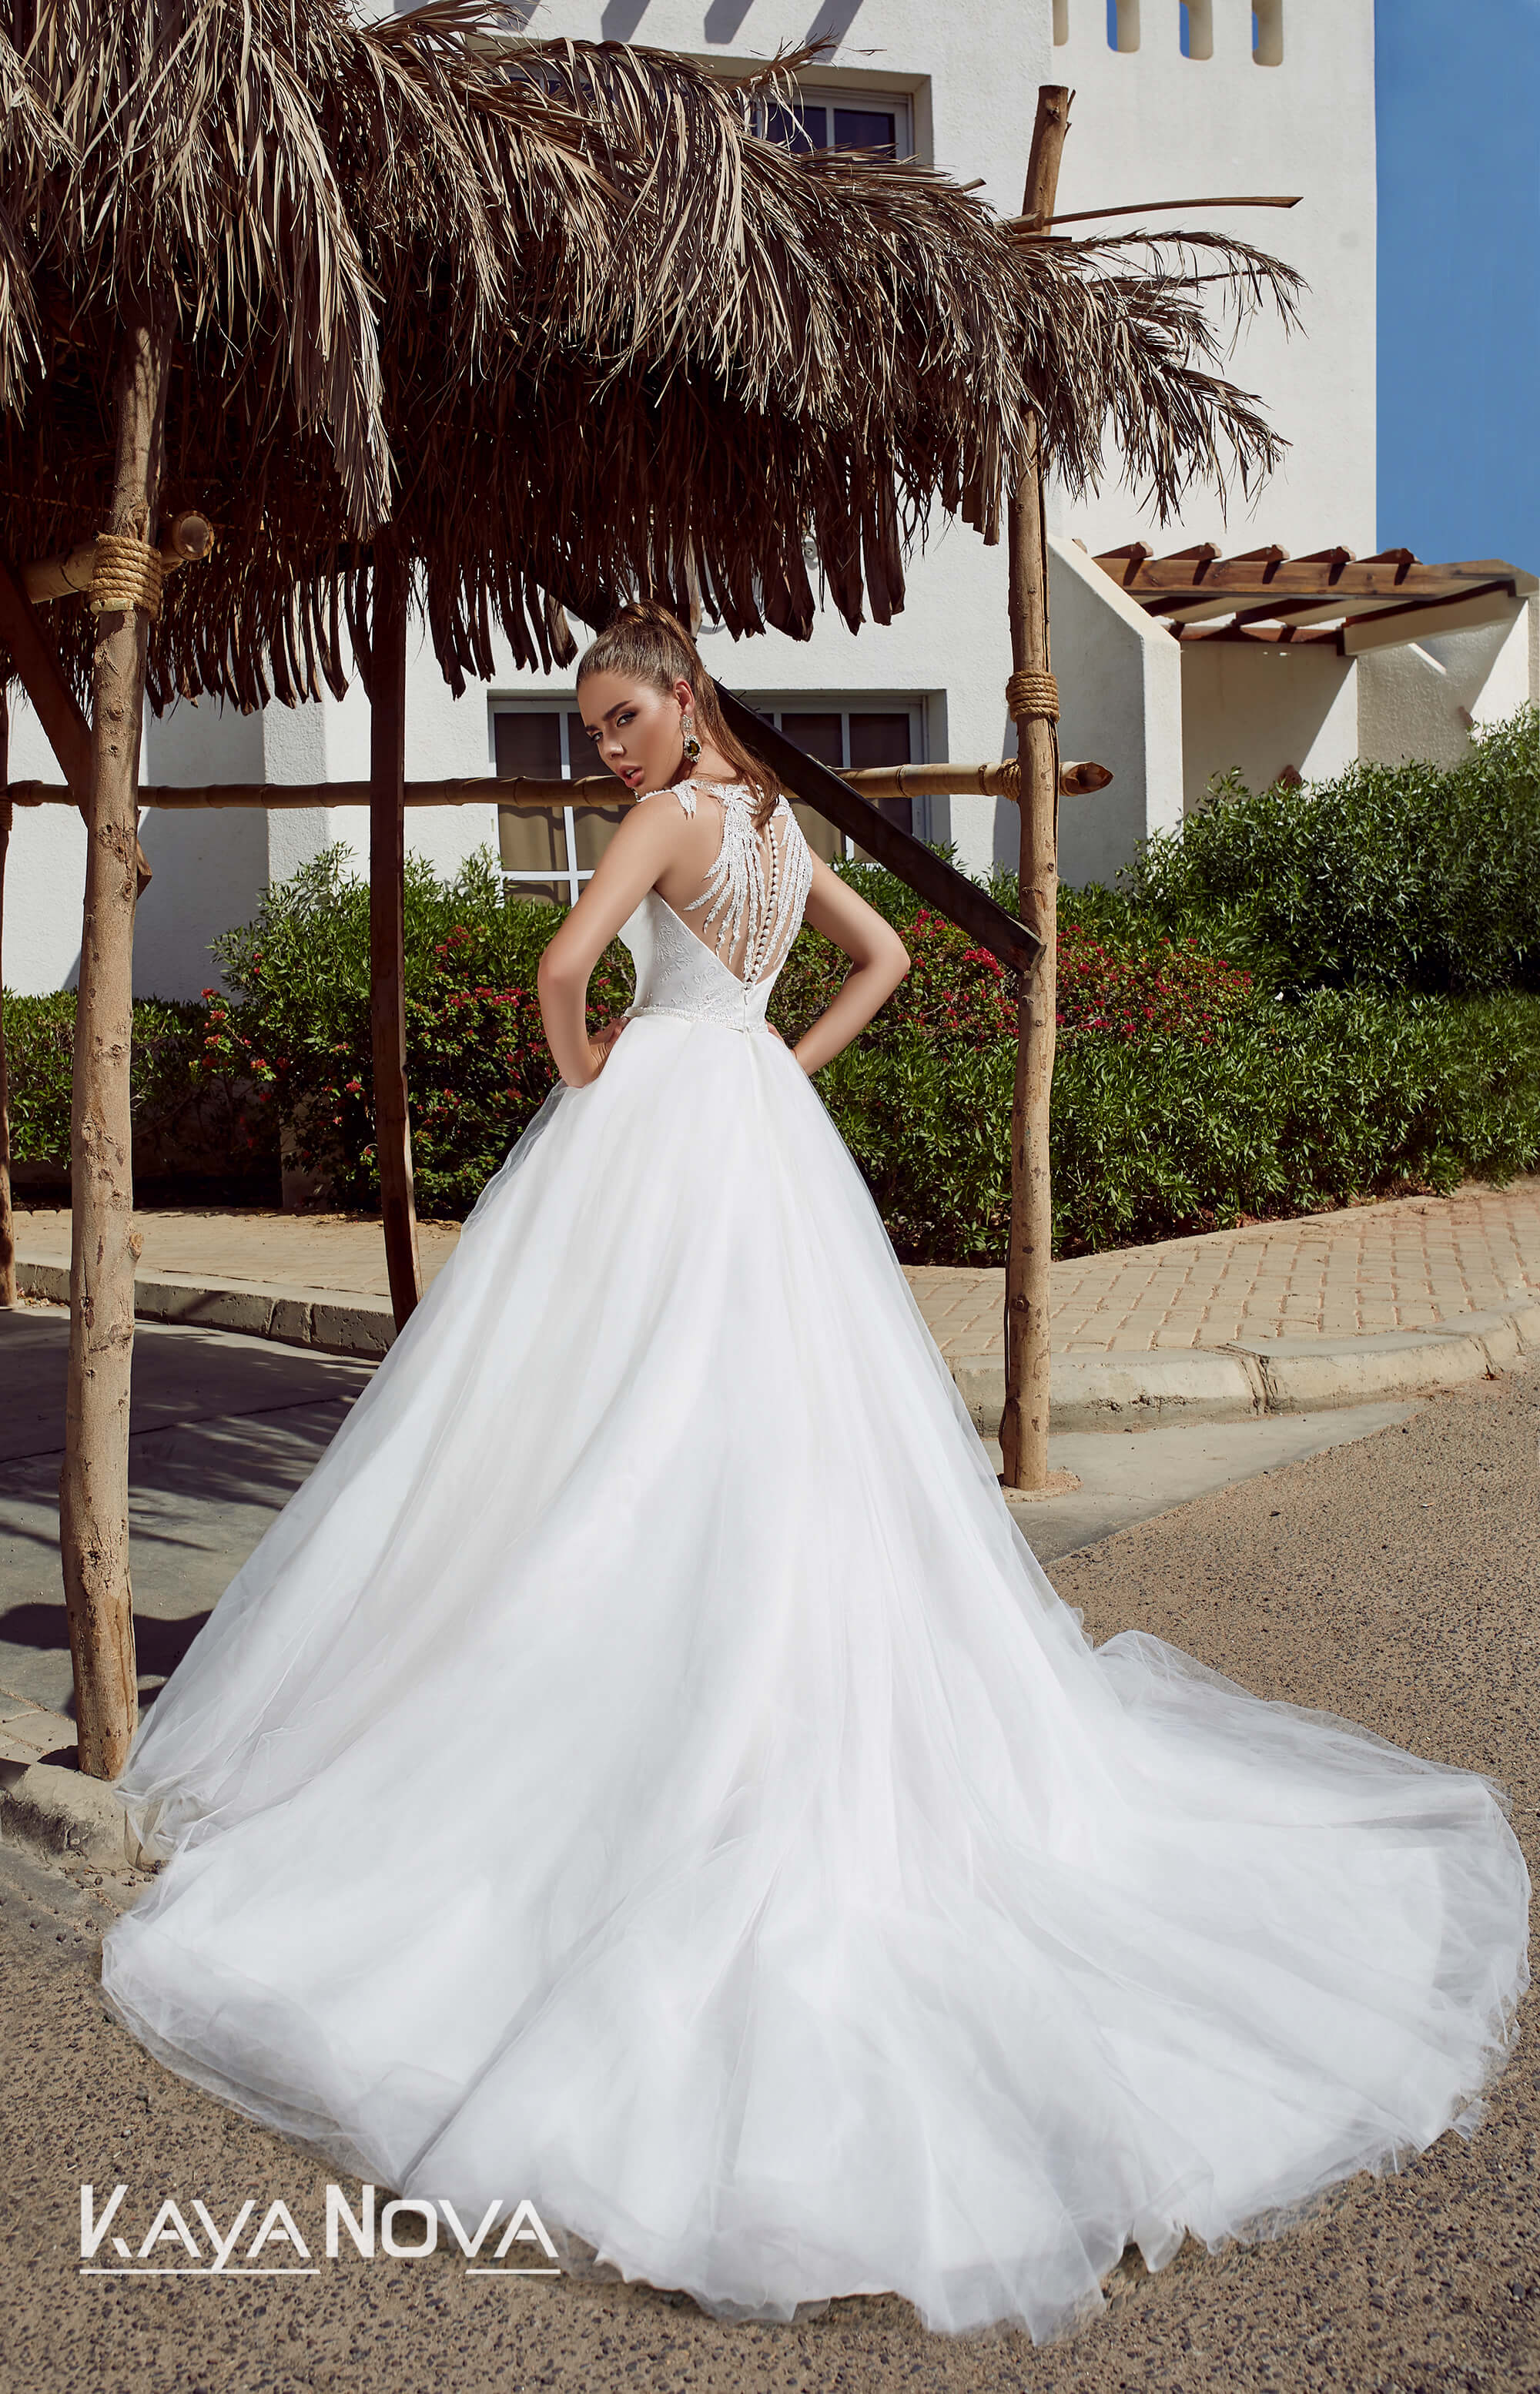 https://kayawedding.com/images/stories/virtuemart/product/Chantal 5.jpg